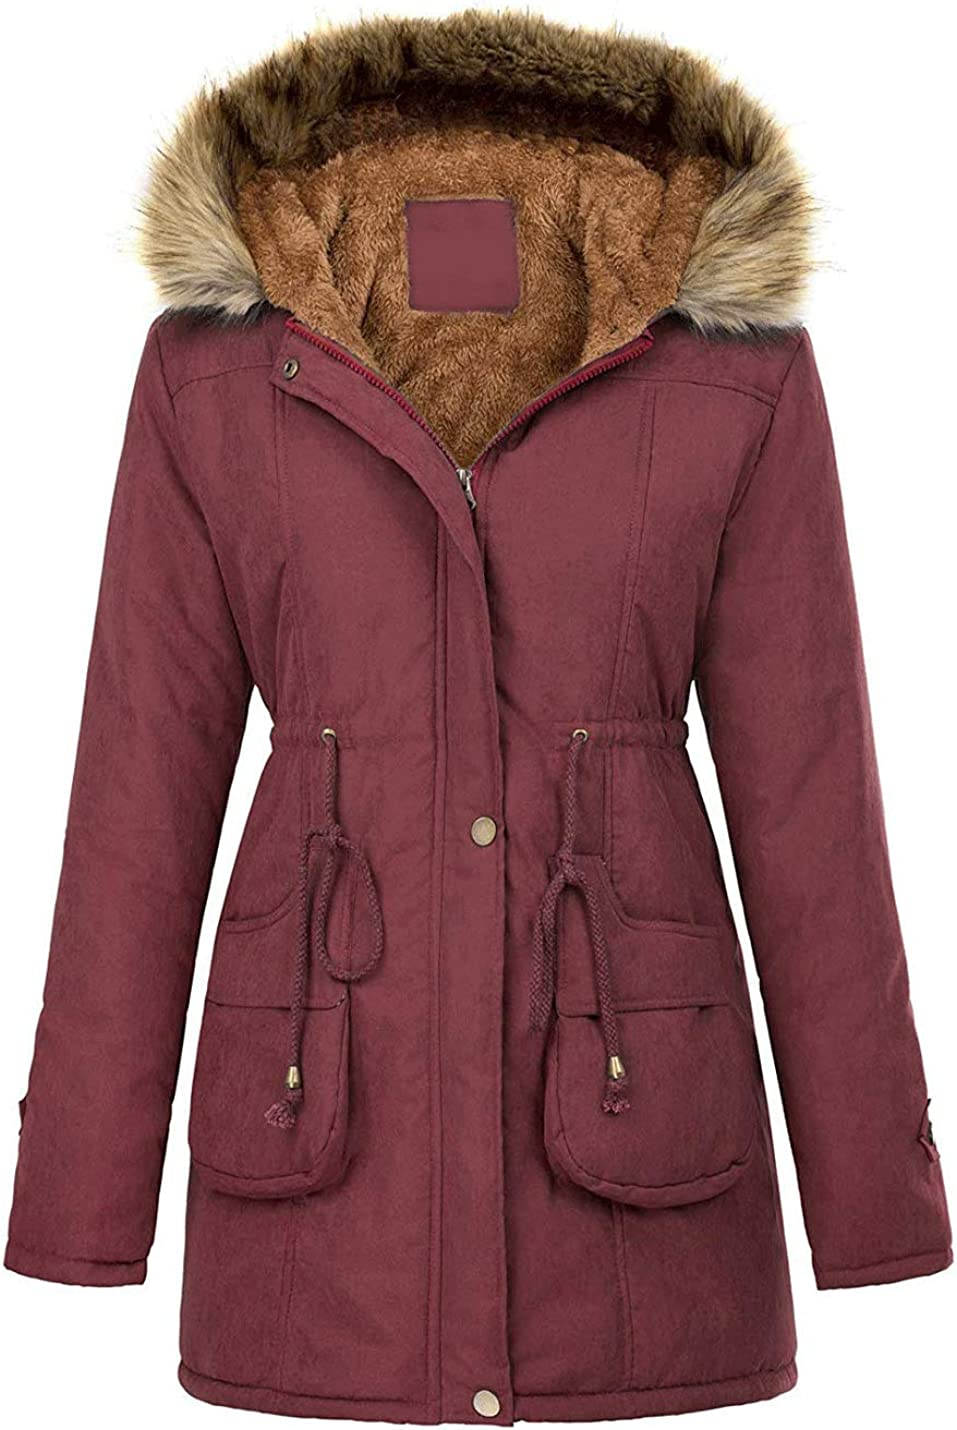 Bankeng Womens Hooded Warm Winter Coats with Faux Fur Lined Outerwear Jacket